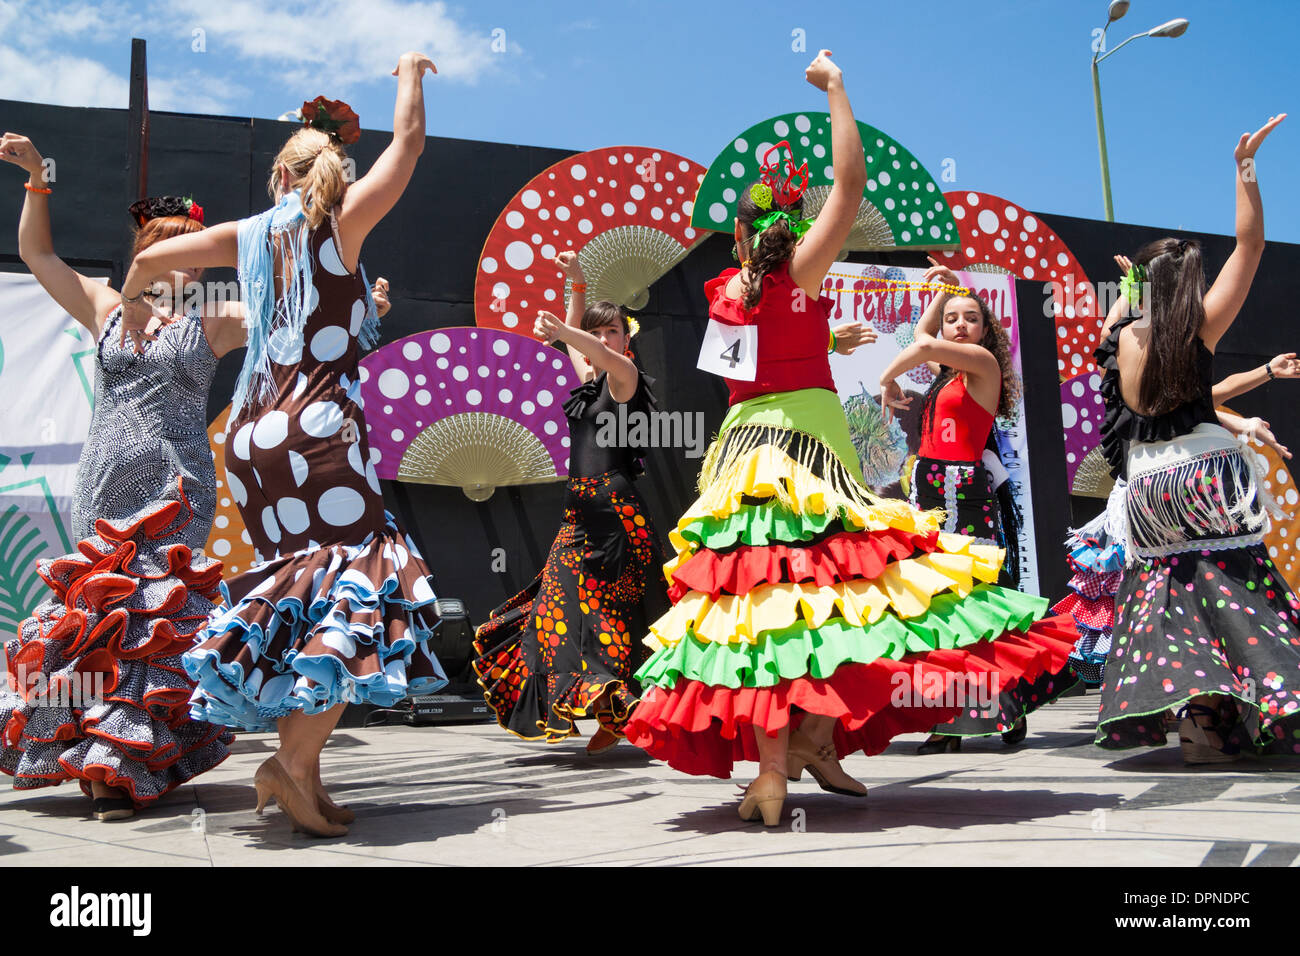 Danseurs de Flamenco Flamenco Feria de Abril au week-end à Las Palmas, Gran Canaria, îles Canaries, Espagne Photo Stock